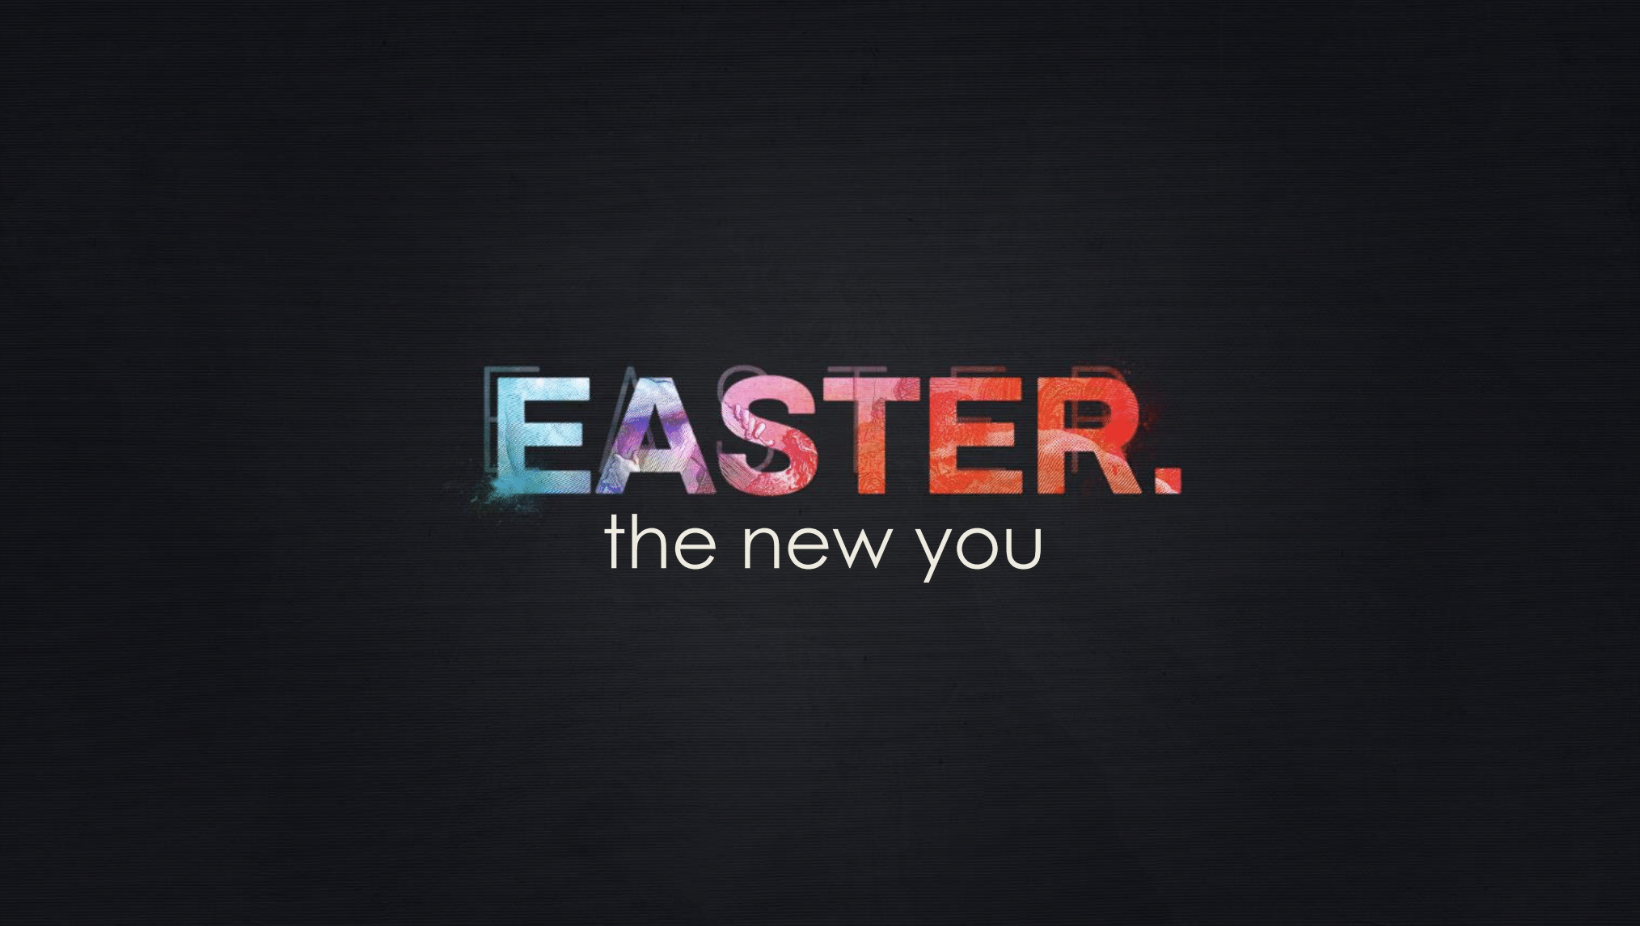 EASTER the new you